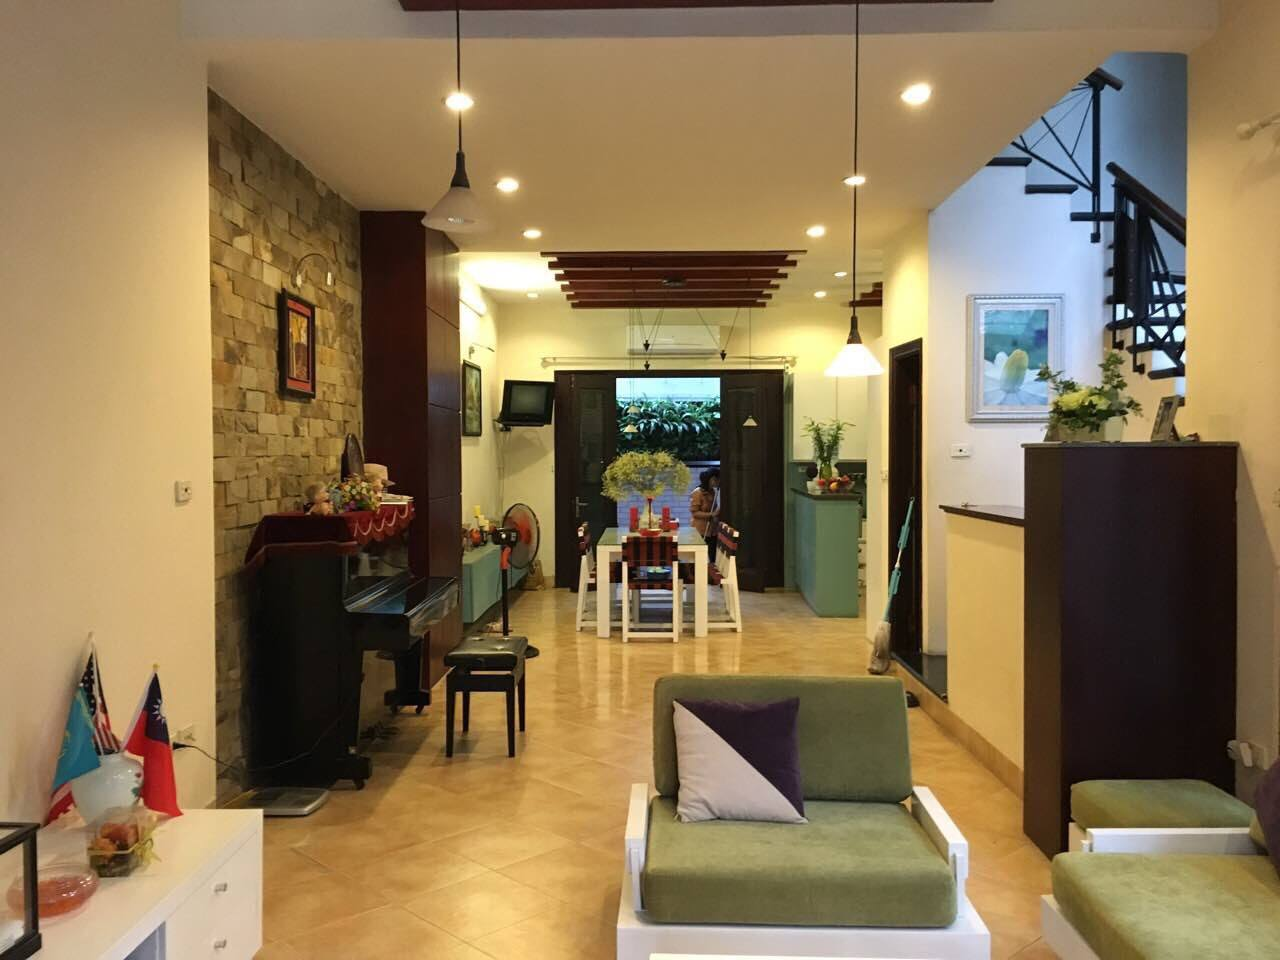 House for rent on Lac Long Quan street!